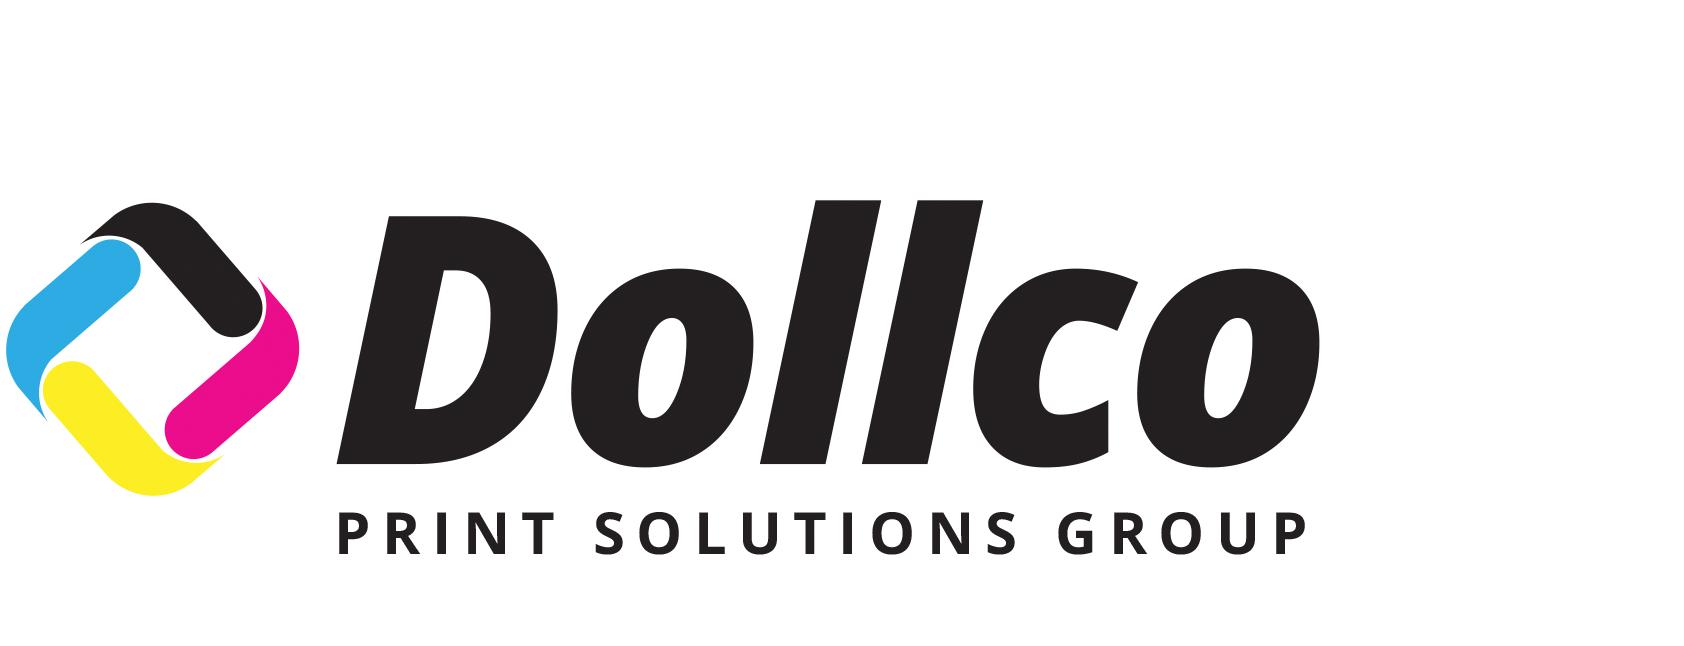 DOLLCO-LOGO-BLACK-4